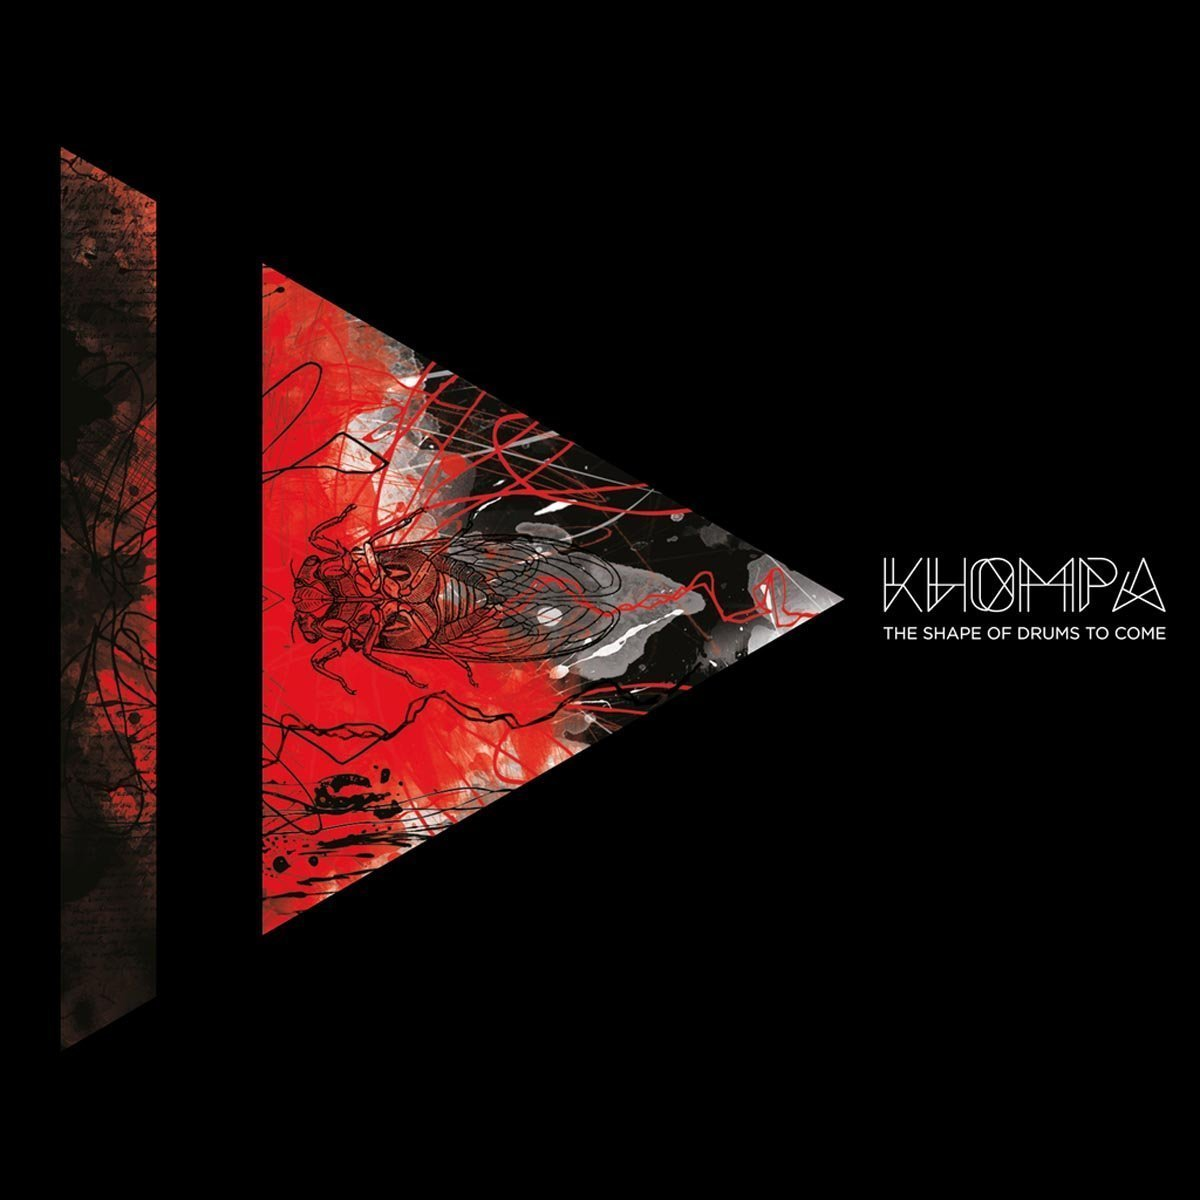 Khompa - The Shape Of Drums To Come (Monotreme Records)